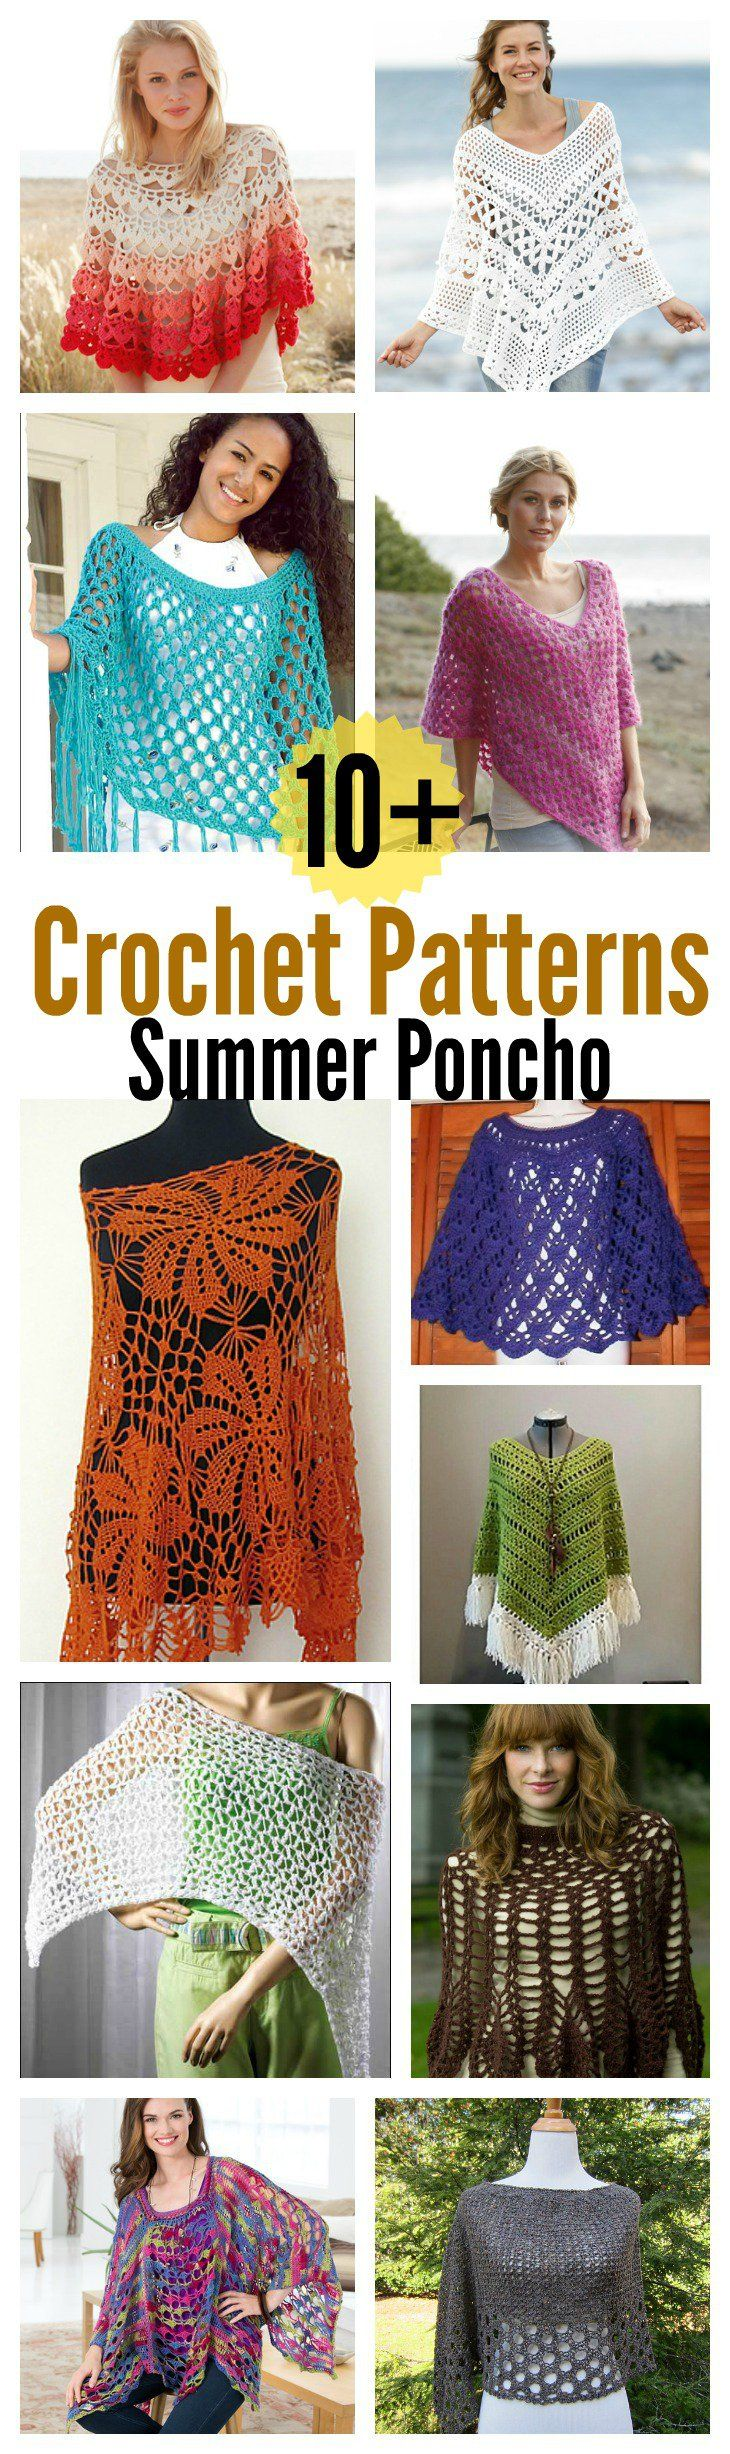 14 best ponchos images on Pinterest | Crochet scarfs, Crochet shawl ...